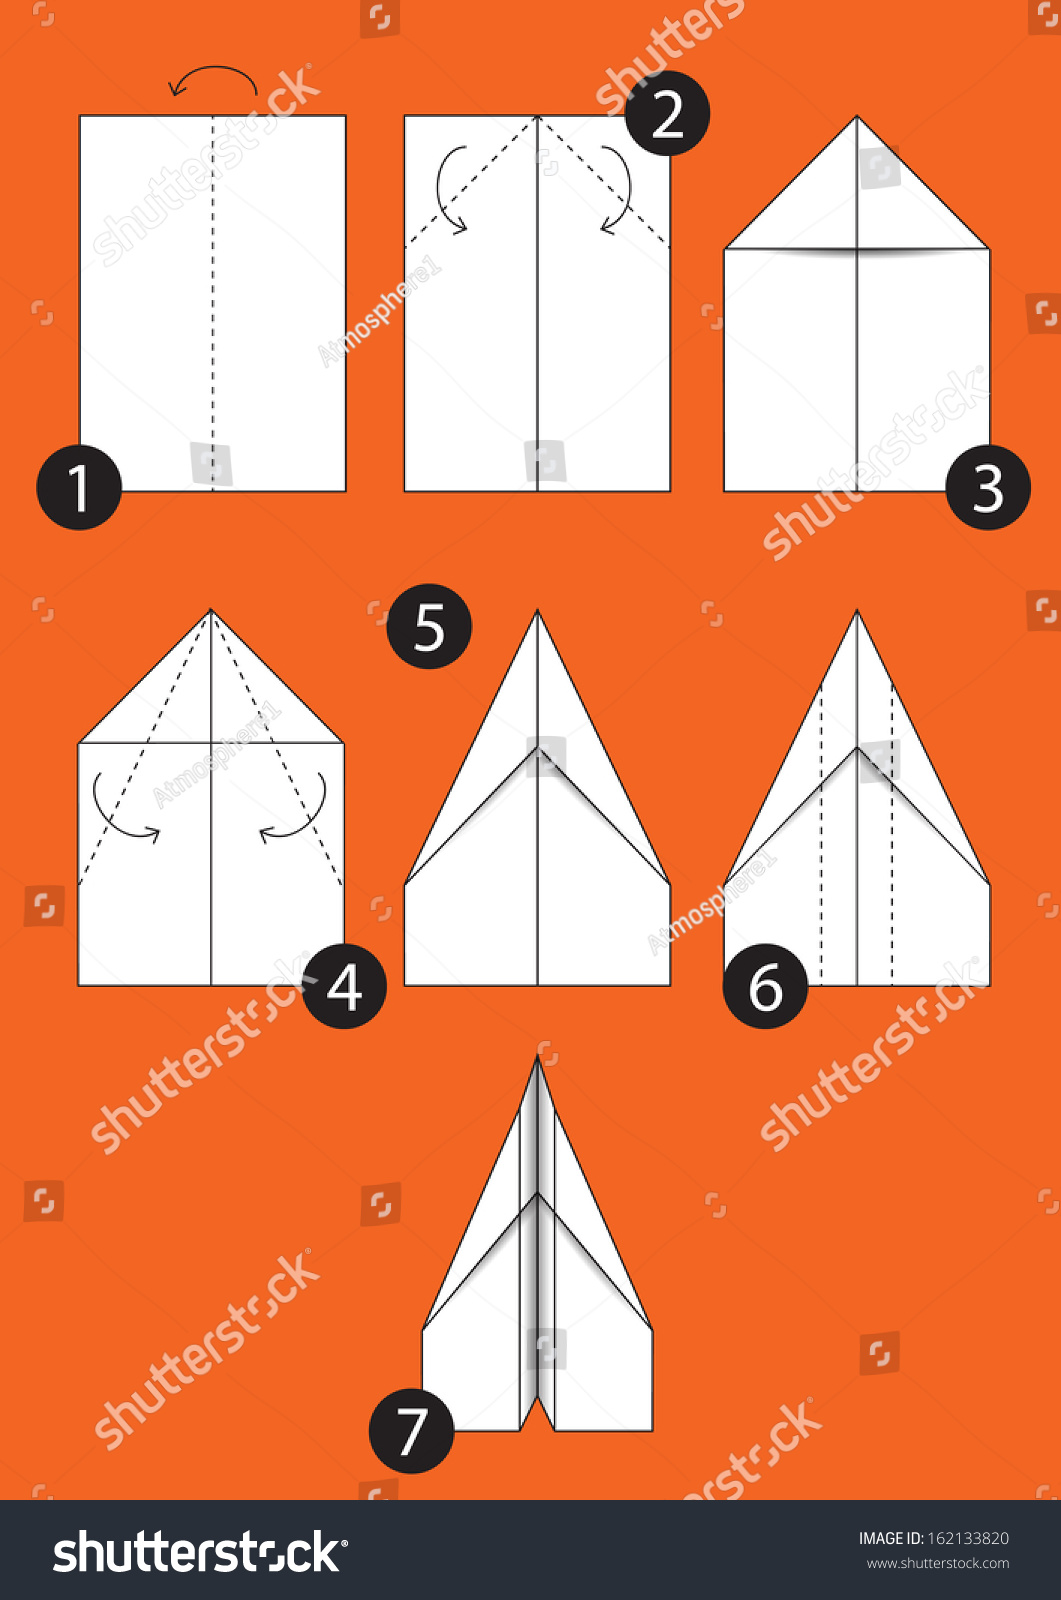 Papierhut Basteln How Make Origami Paper Airplane Instructions Stock Vector